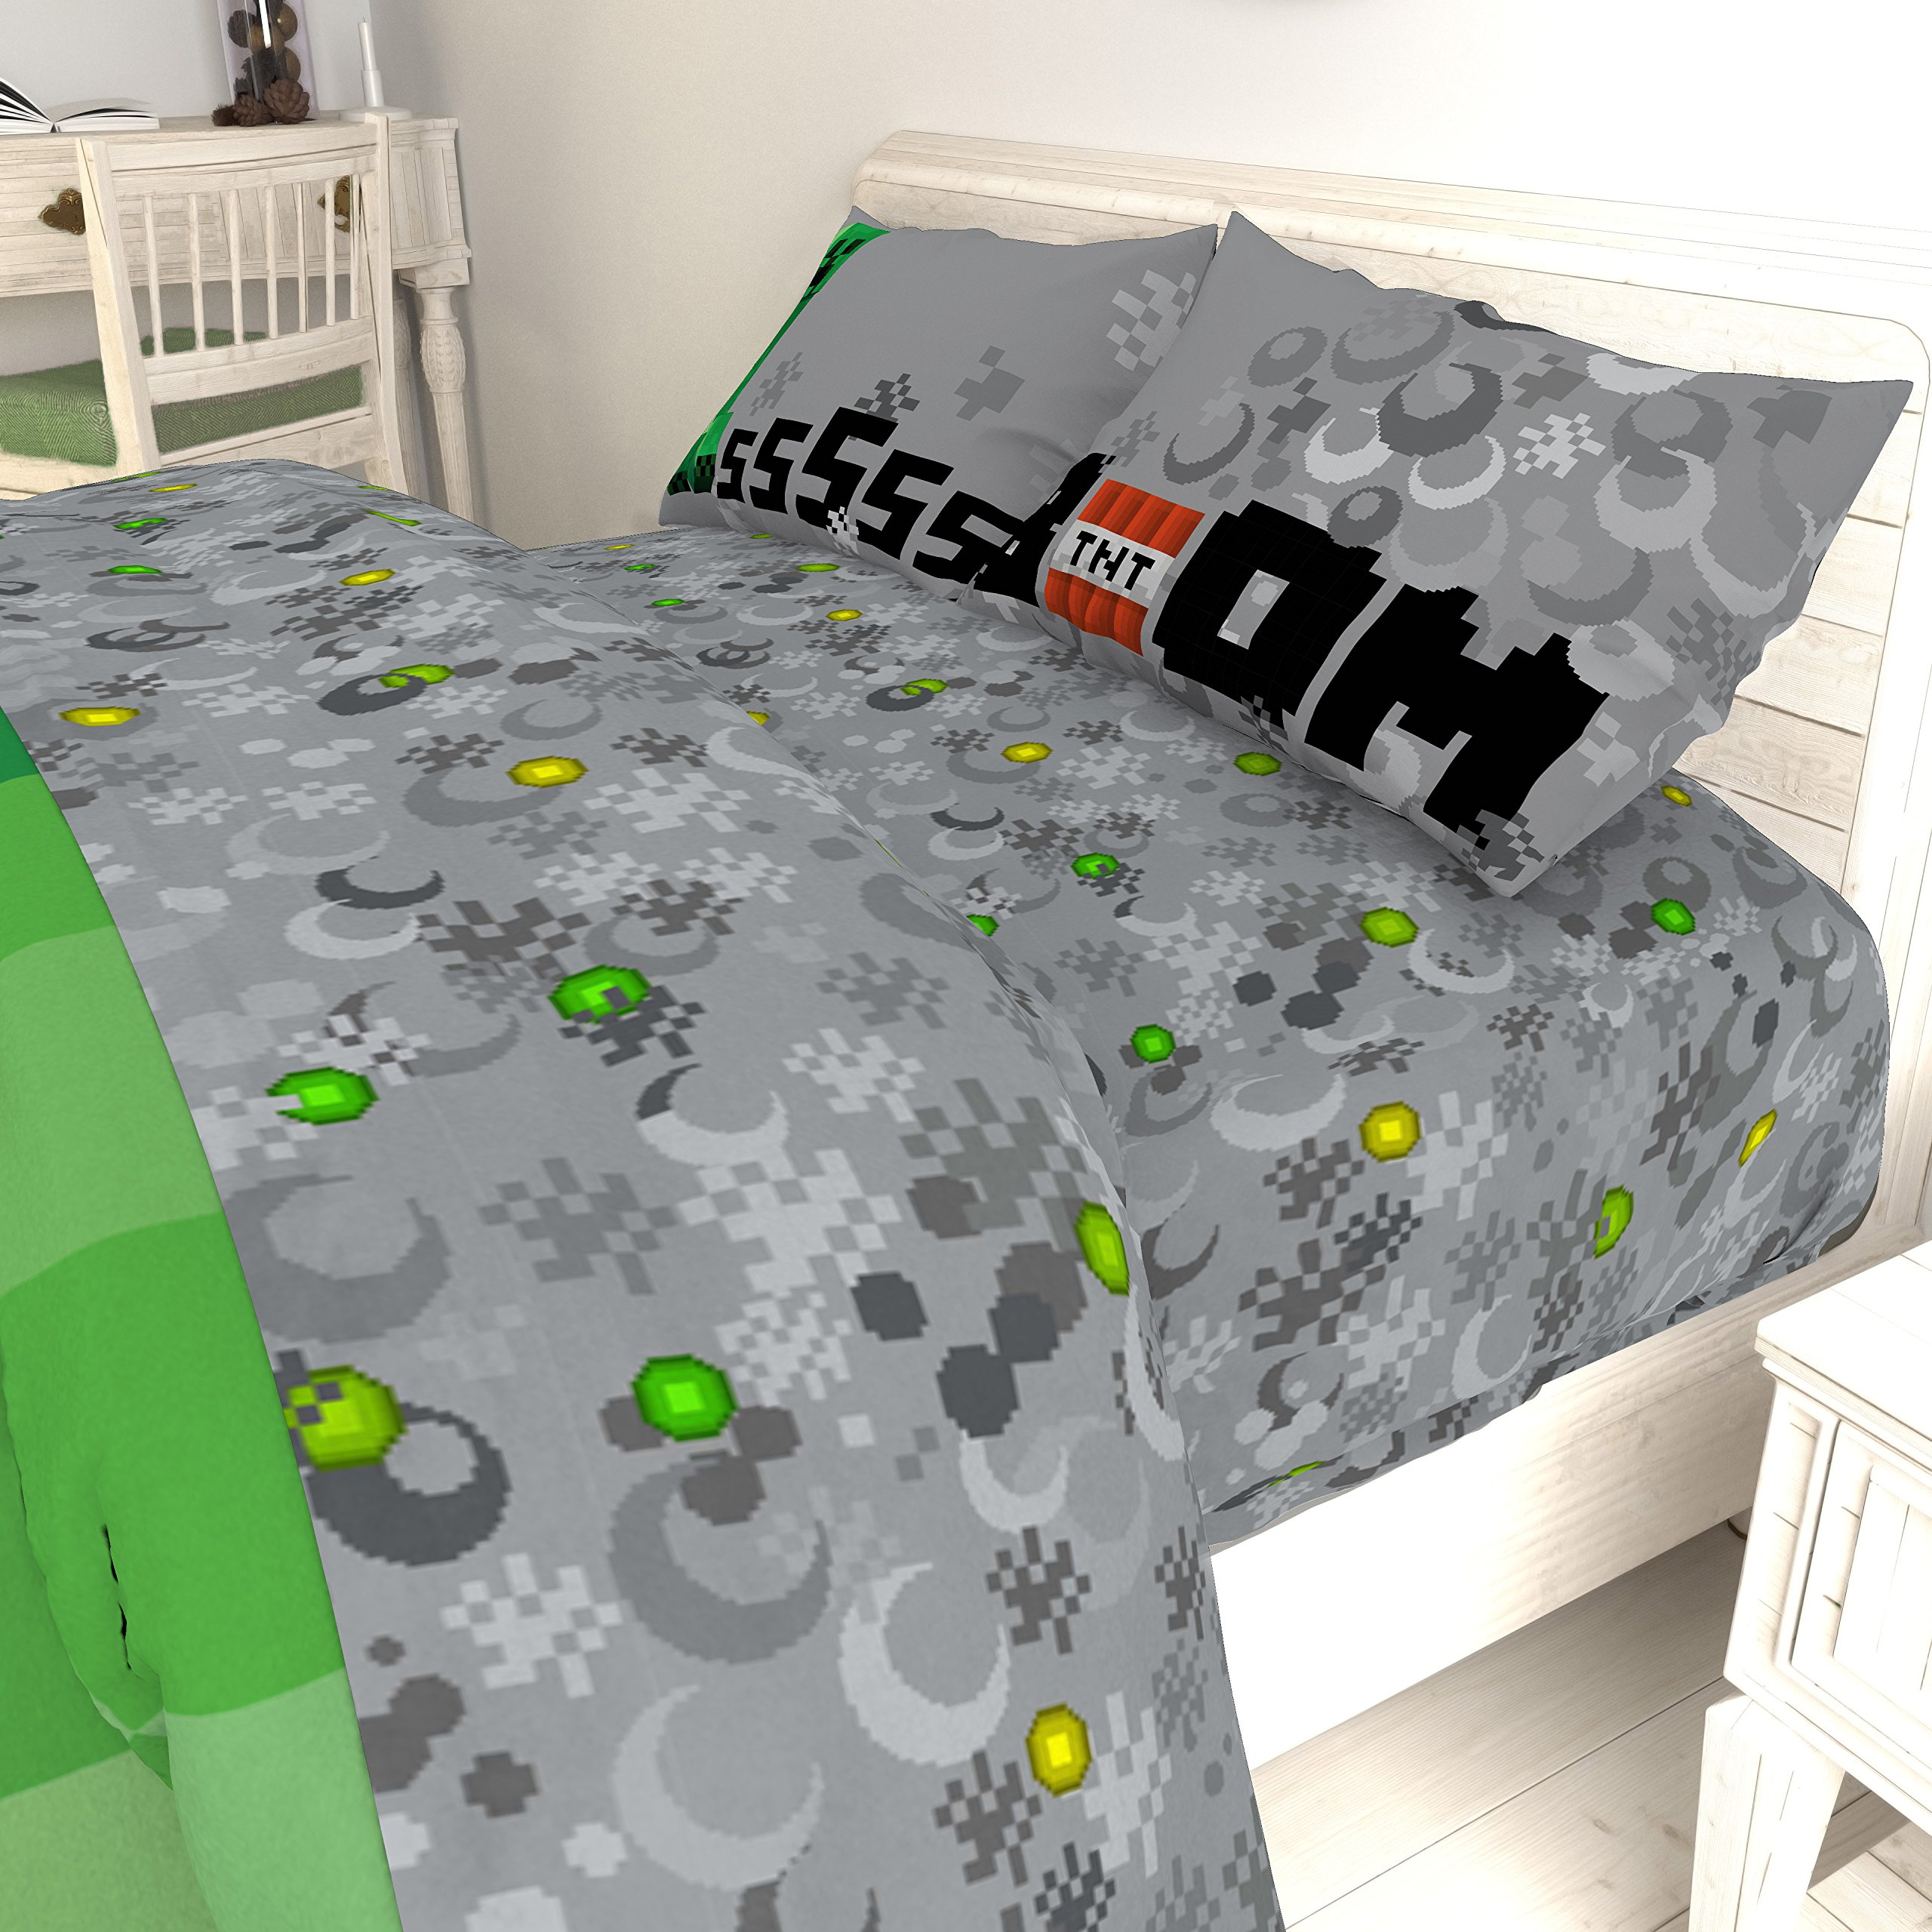 Jay Franco Minecraft Creeper 5 Piece Full Bed Set - Includes Reversible Comforter & Sheet Set - Super Soft Fade Resistant Microfiber - (Official Minecraft Product) by Jay Franco (Image #5)